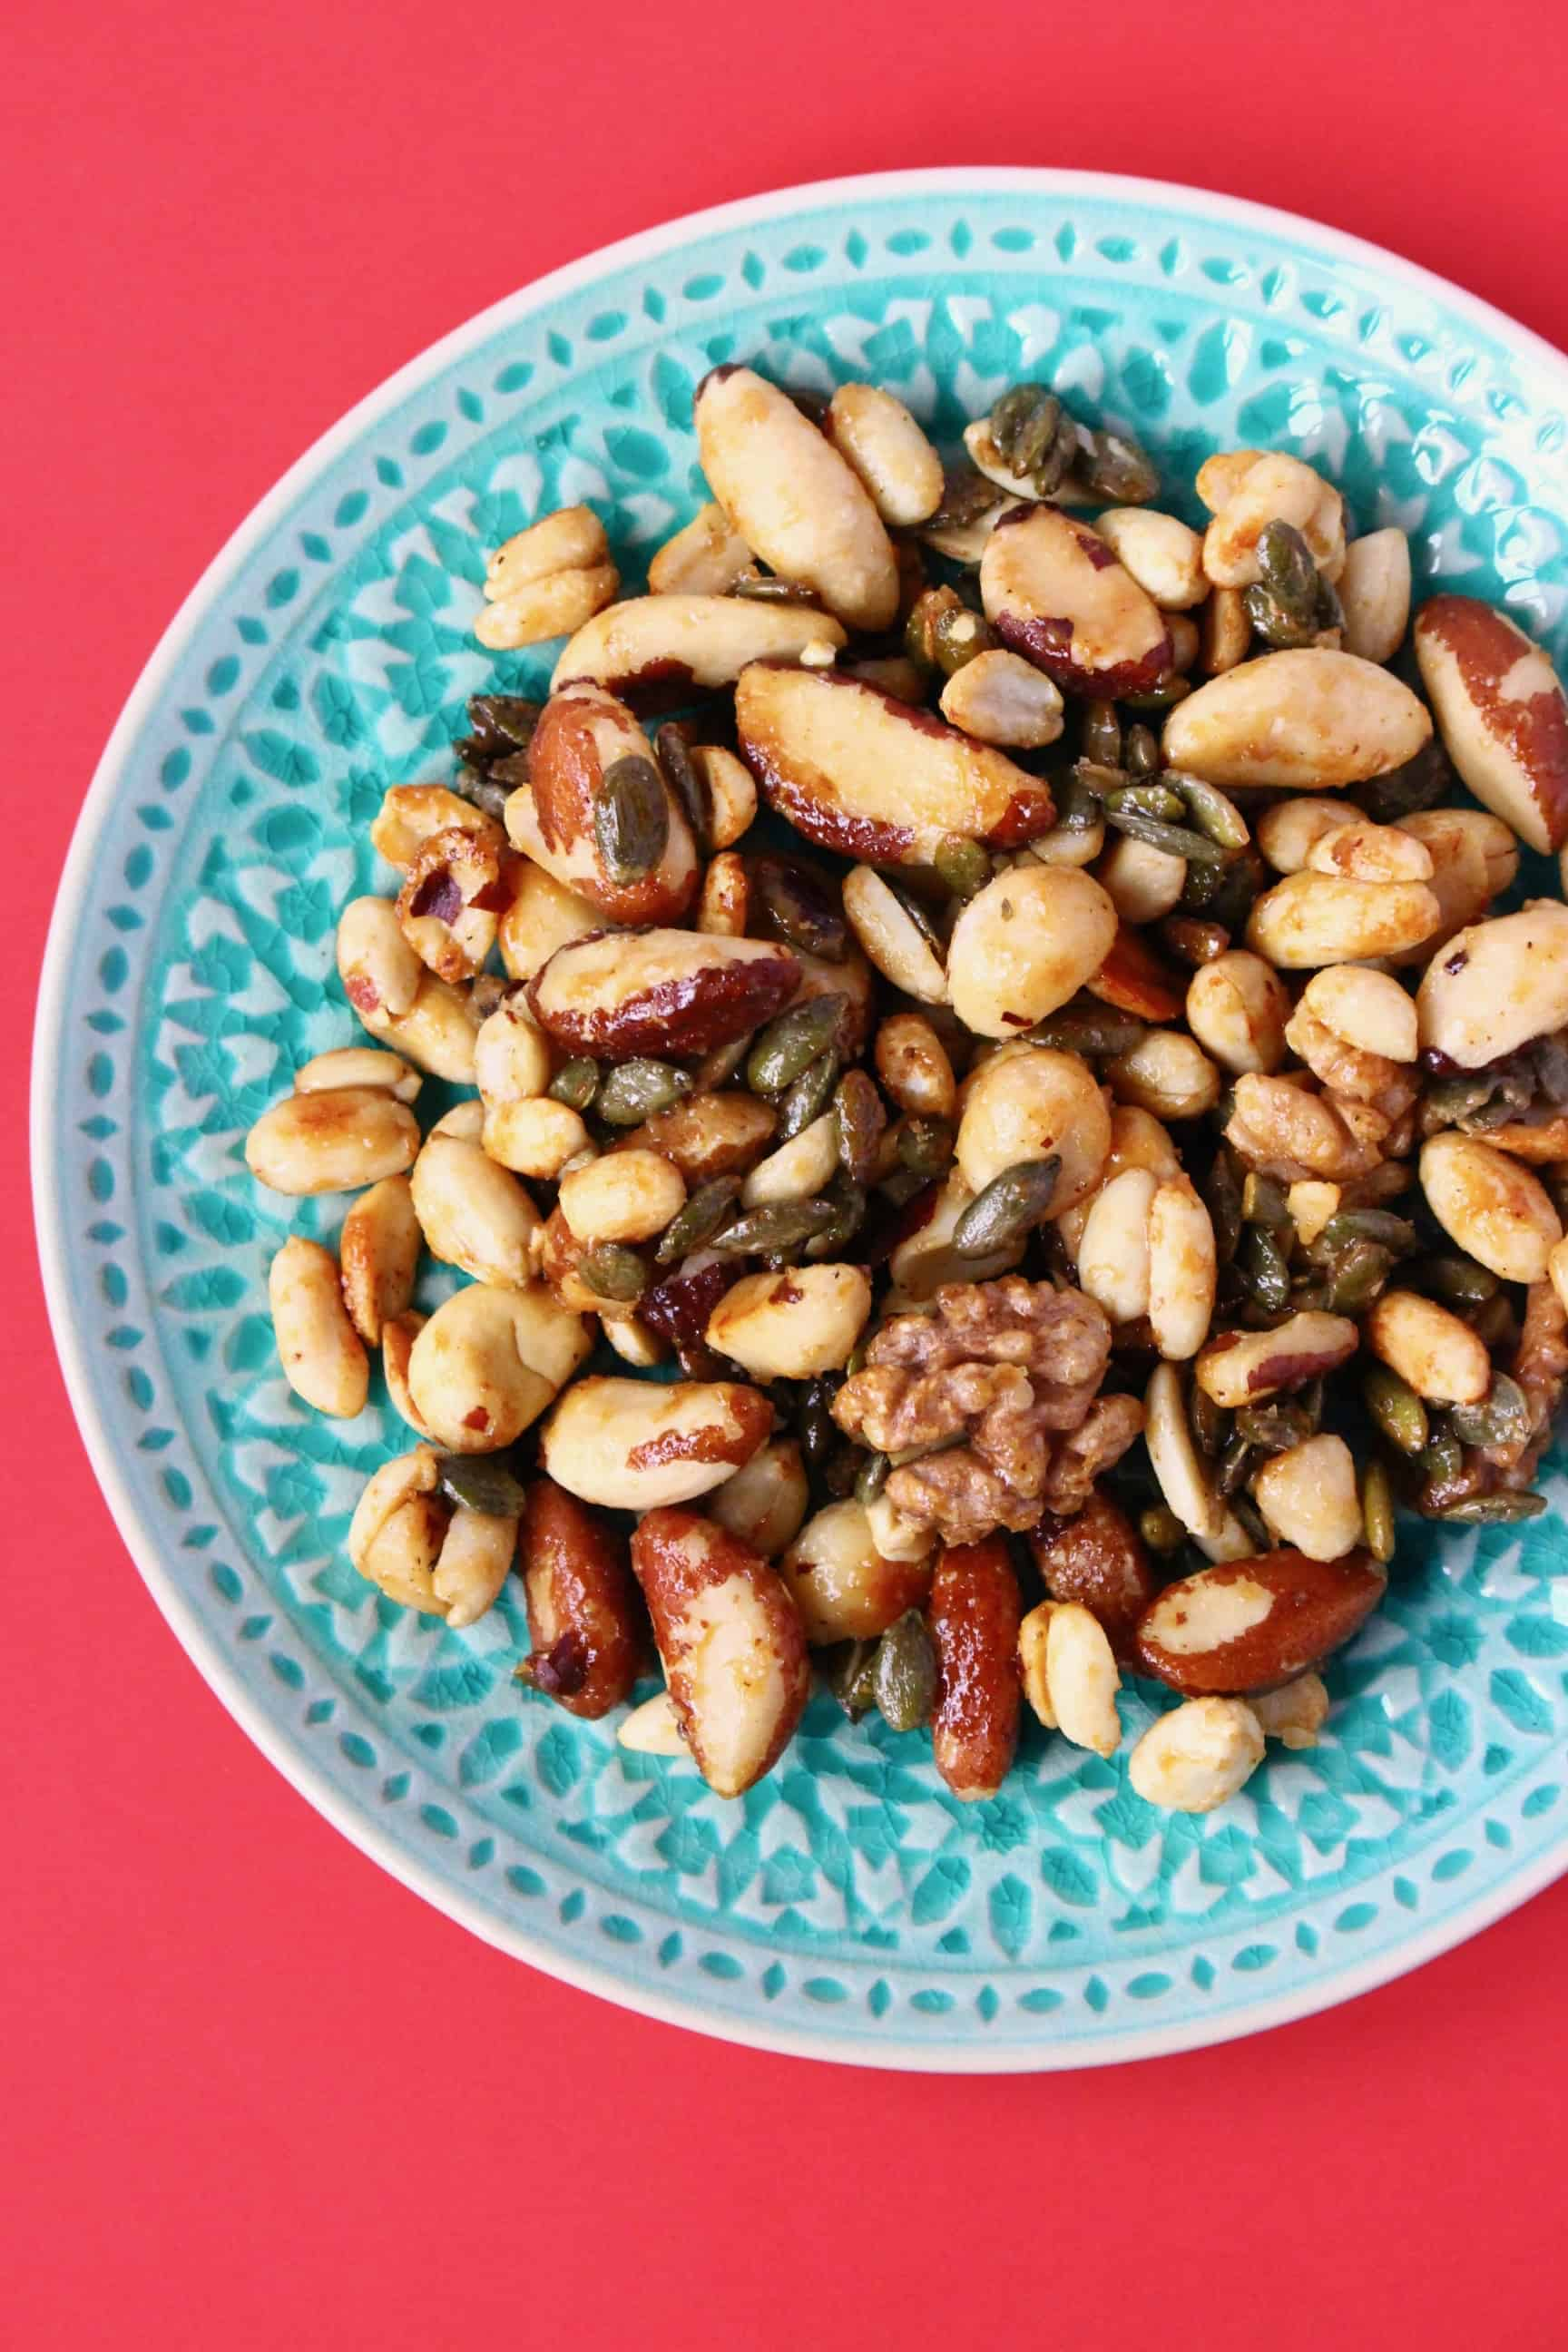 Candied nuts on a green plate against a red background